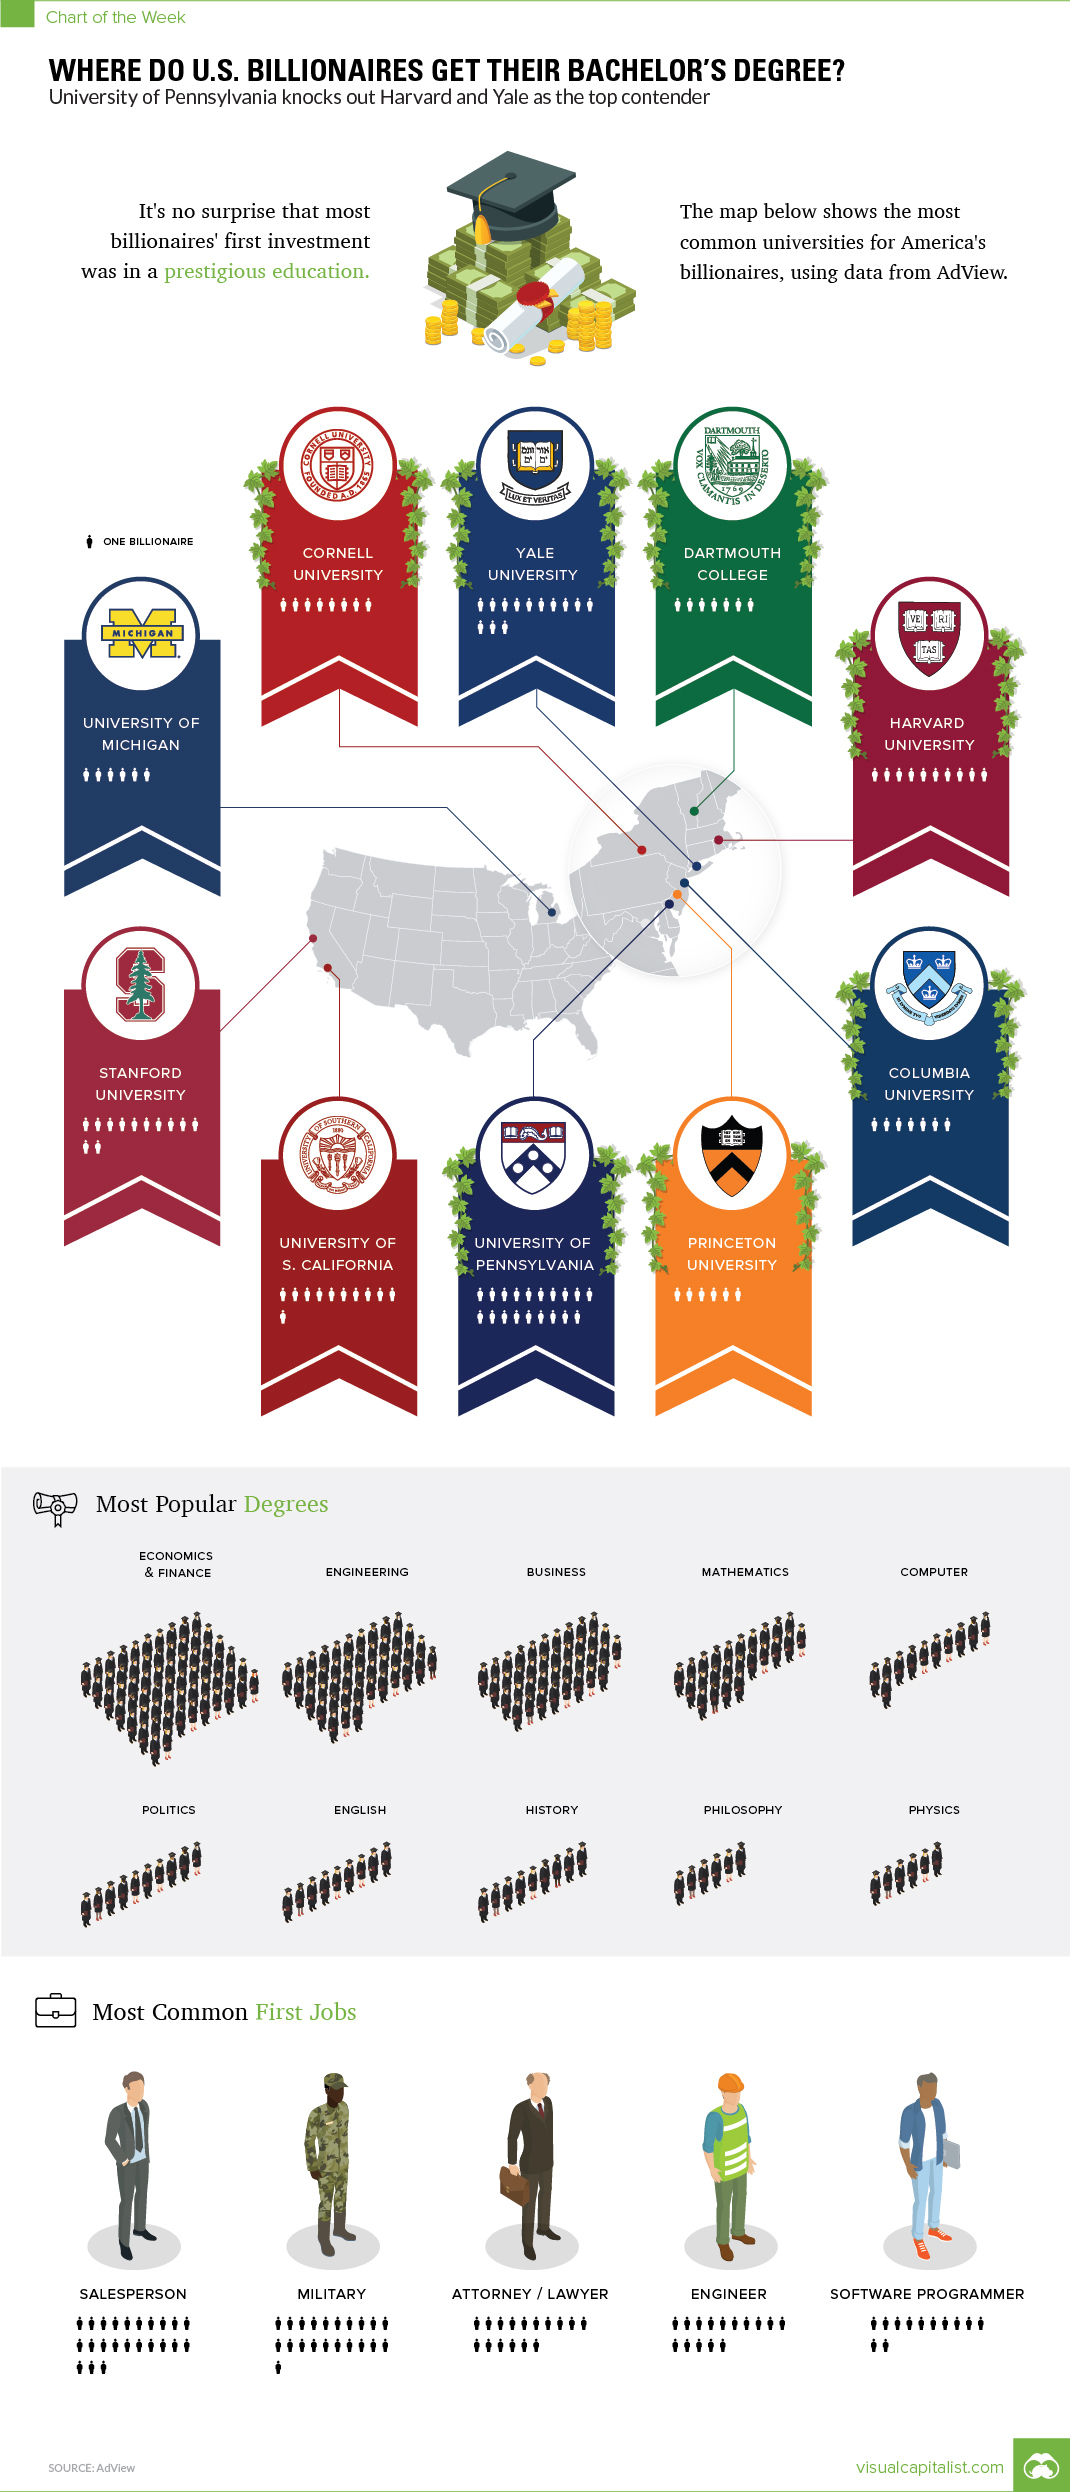 Which College Produces the Most Billionaires?